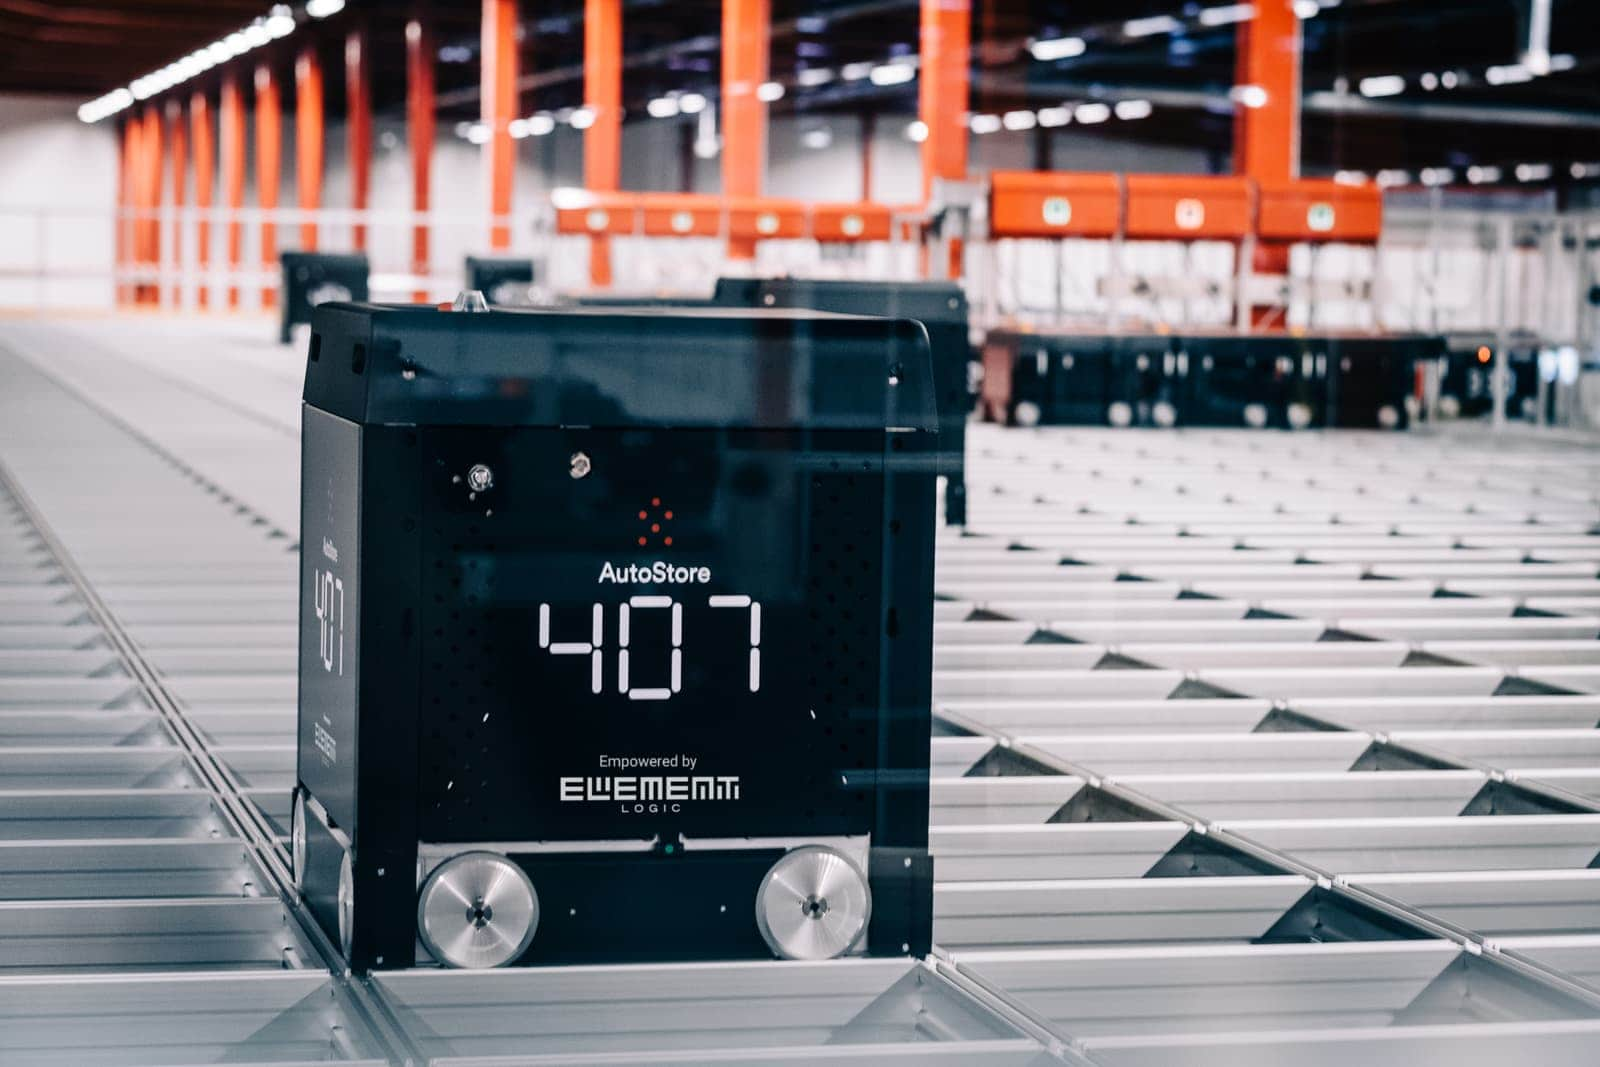 AutoStore Black line B1 warehouse robot